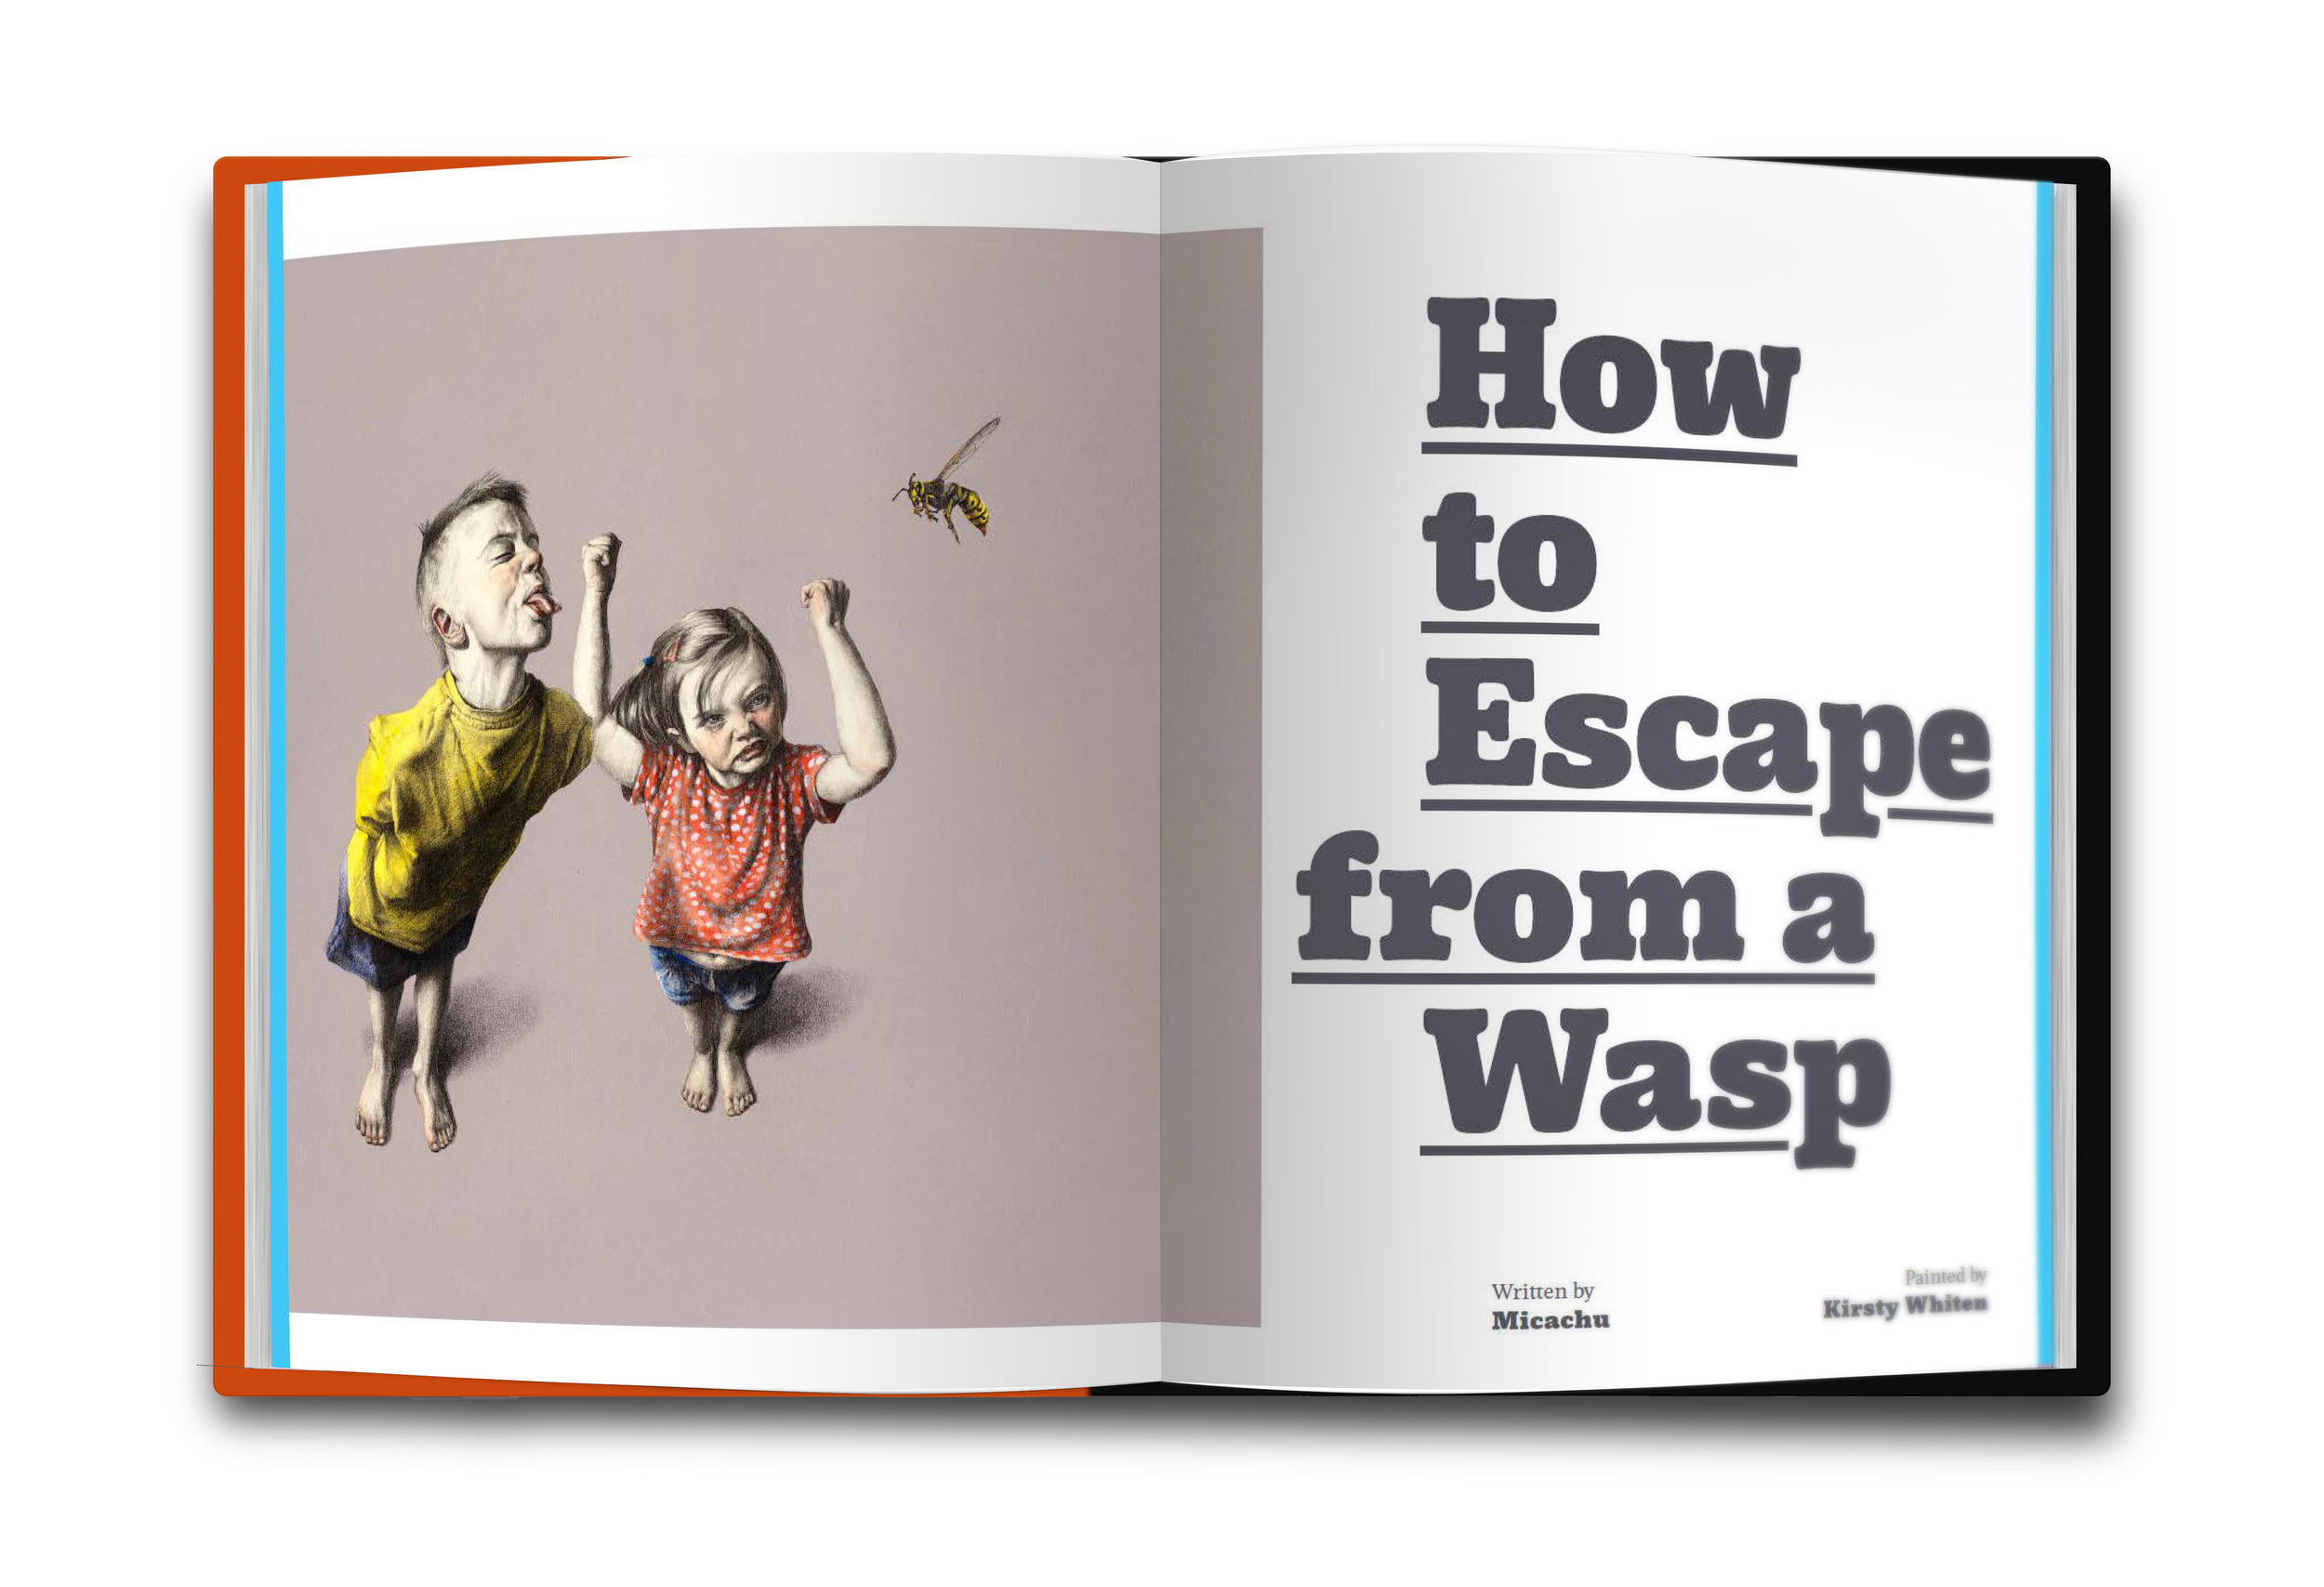 booklayout4wasp.jpg